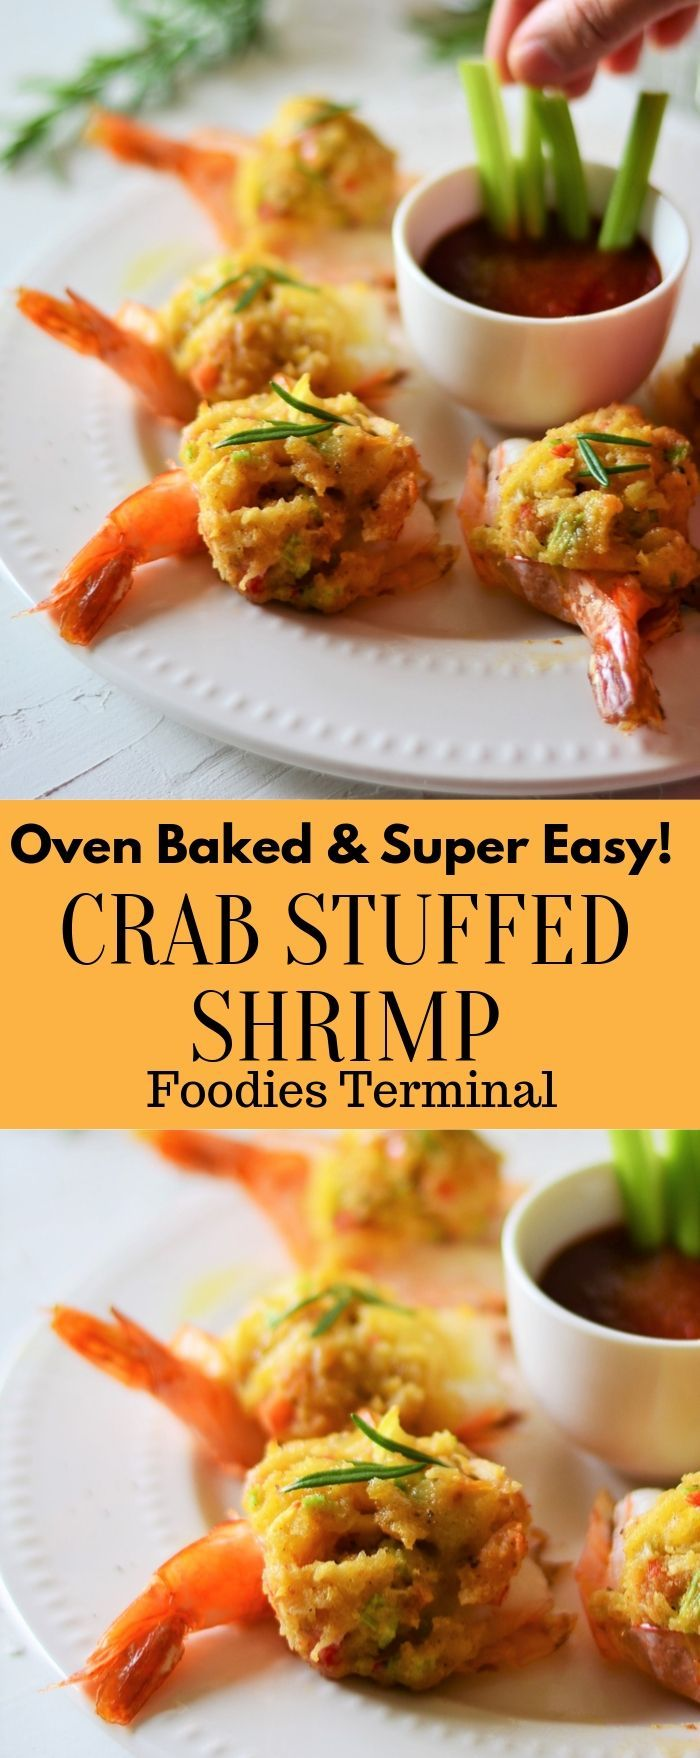 Easy Baked Stuffed Shrimp with Crabmeat & Ritz crackers.